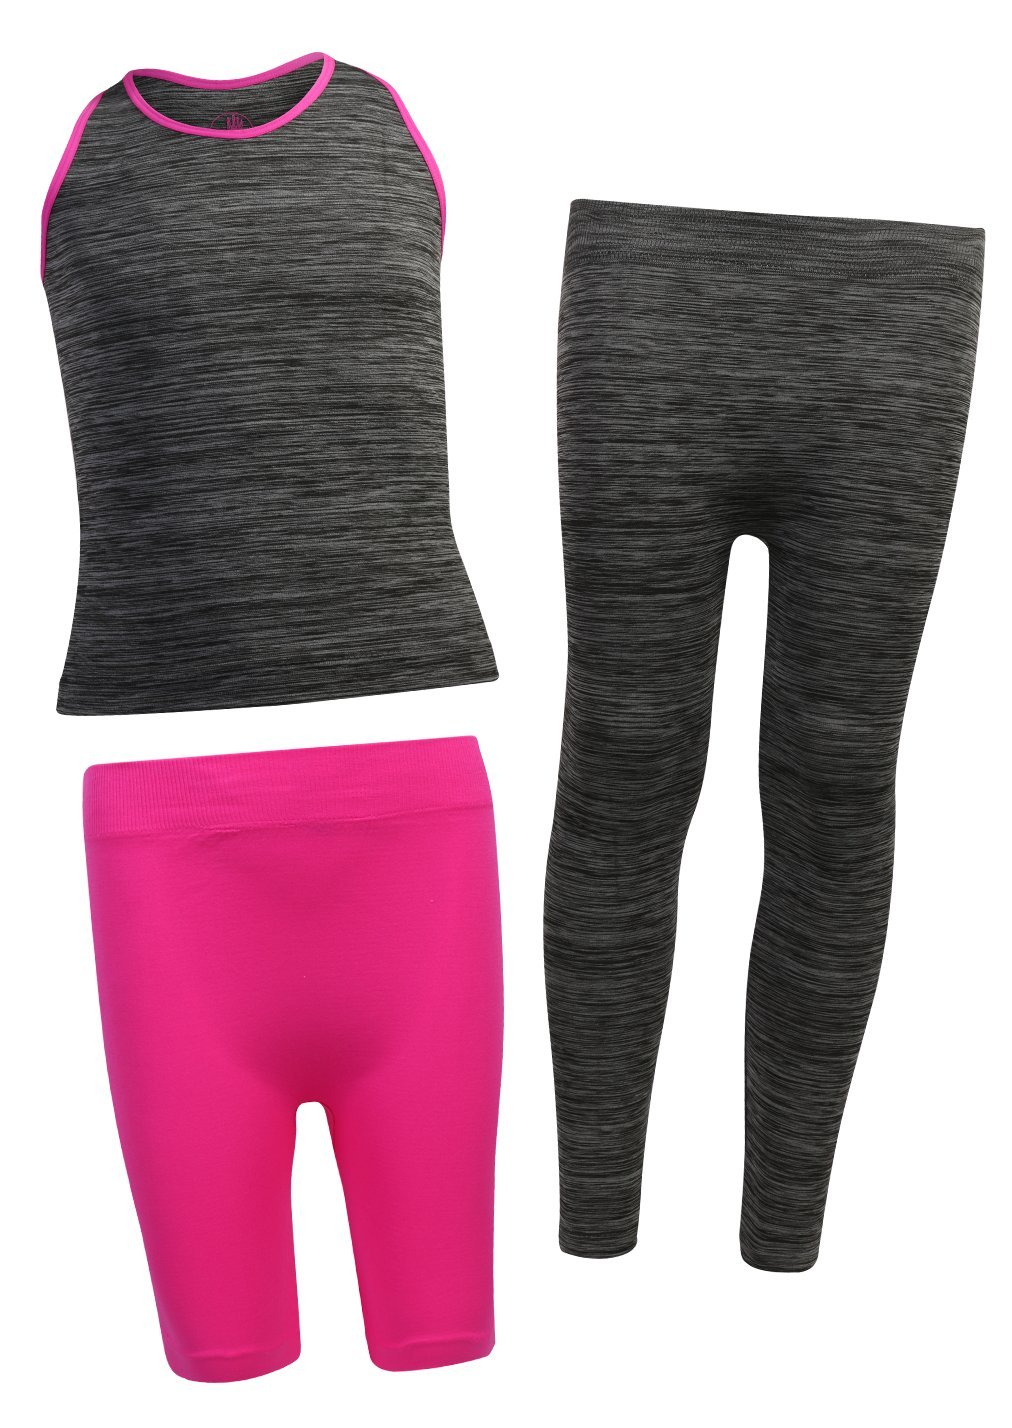 Body Glove Girl's 3 Piece Athletic Shorts, Legging Tank Top Sets P000456403